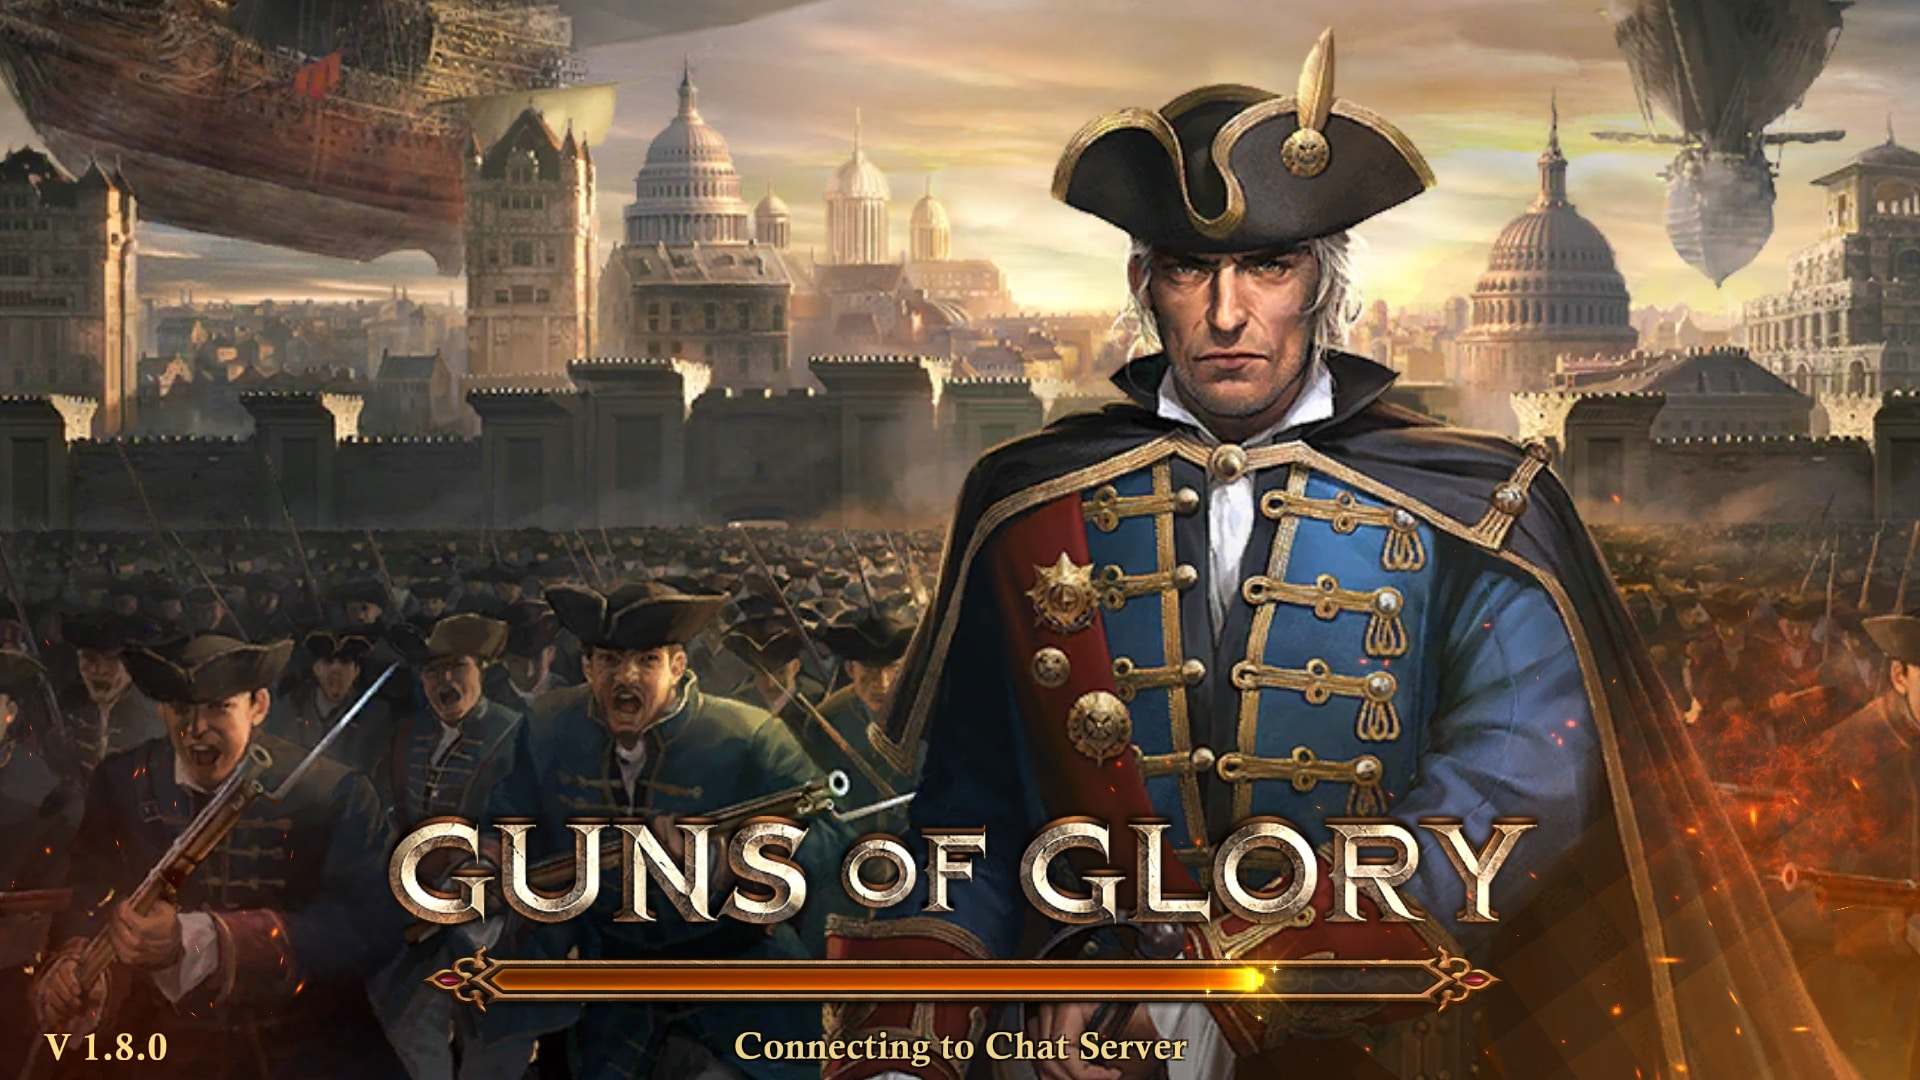 Download Guns of Glory APK- For Android and iOS 9